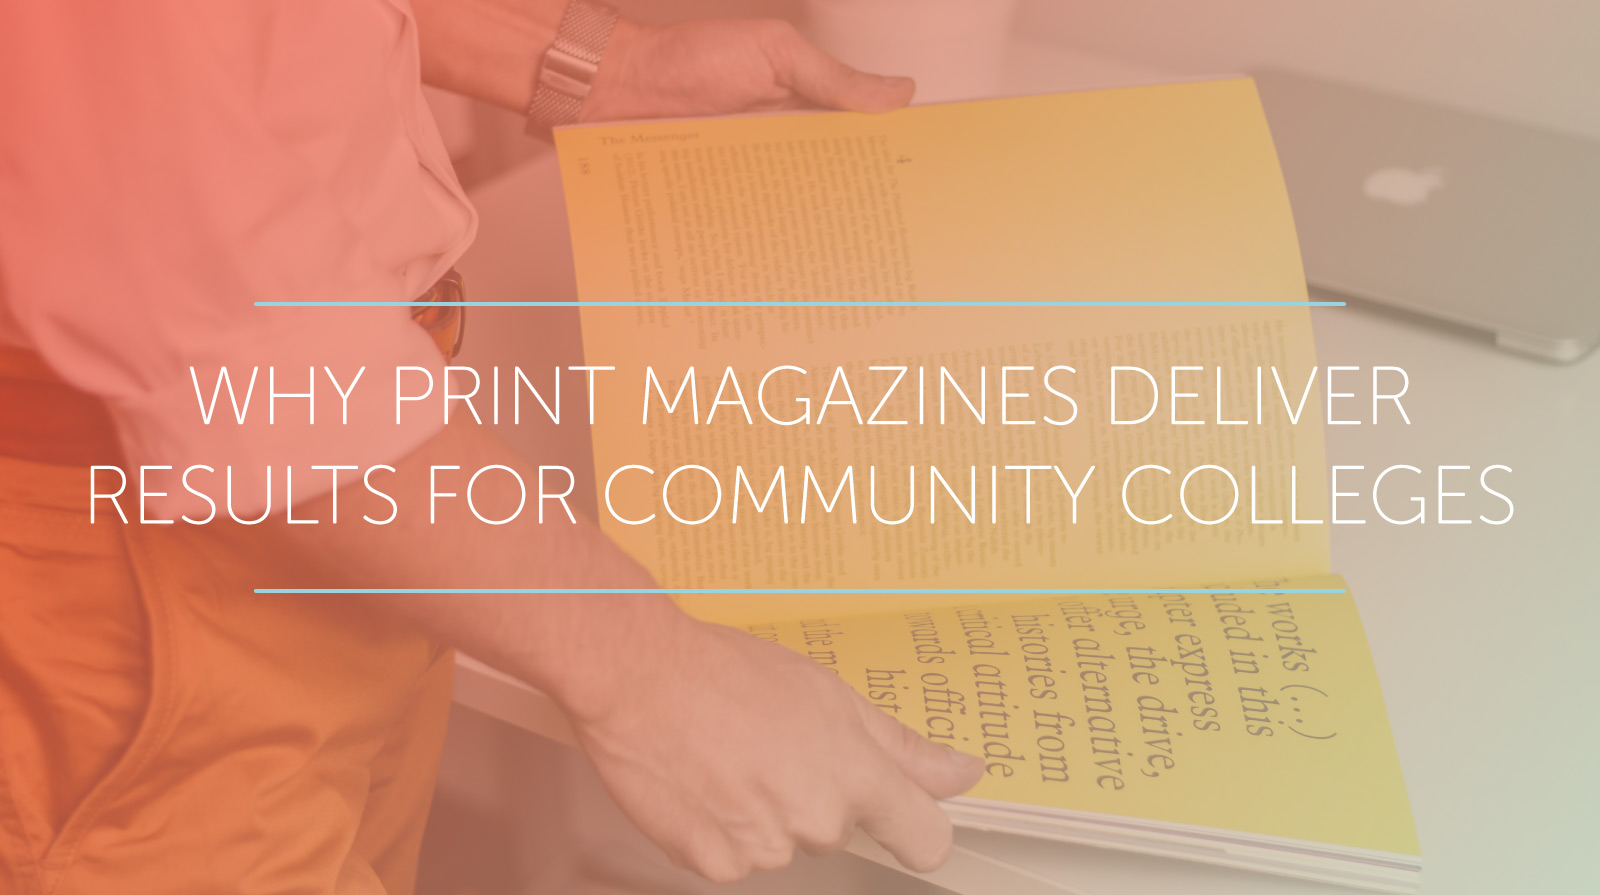 print magazines deliver results for community colleges